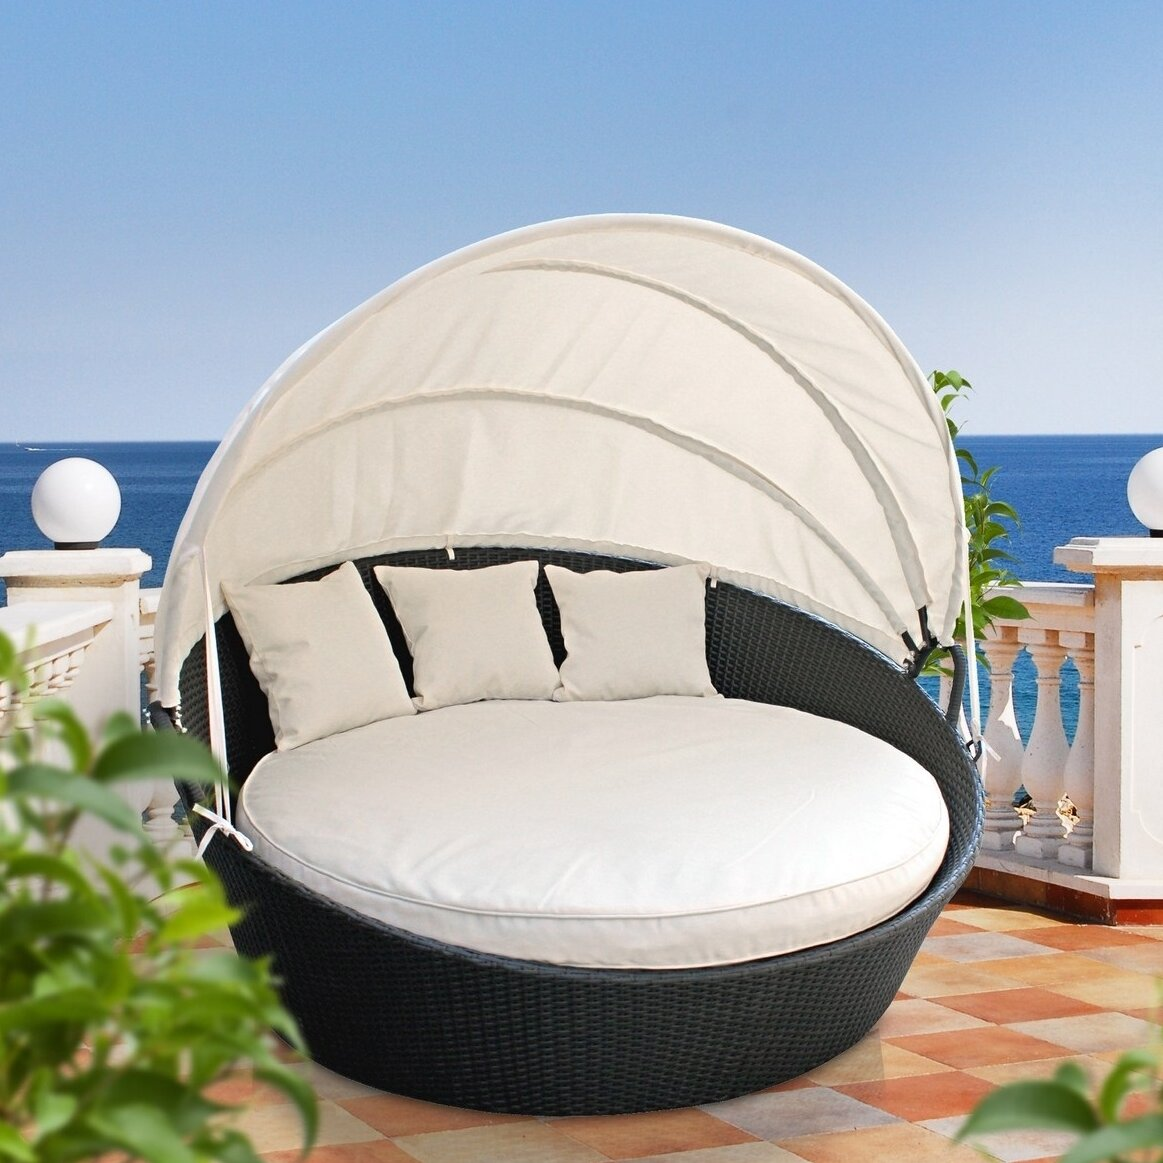 Modway Snooze Canopy Outdoor Patio Daybed with Cushion  : Modway Snooze Canopy Outdoor Patio Daybed WQ6742 from www.wayfair.com size 1163 x 1163 jpeg 273kB